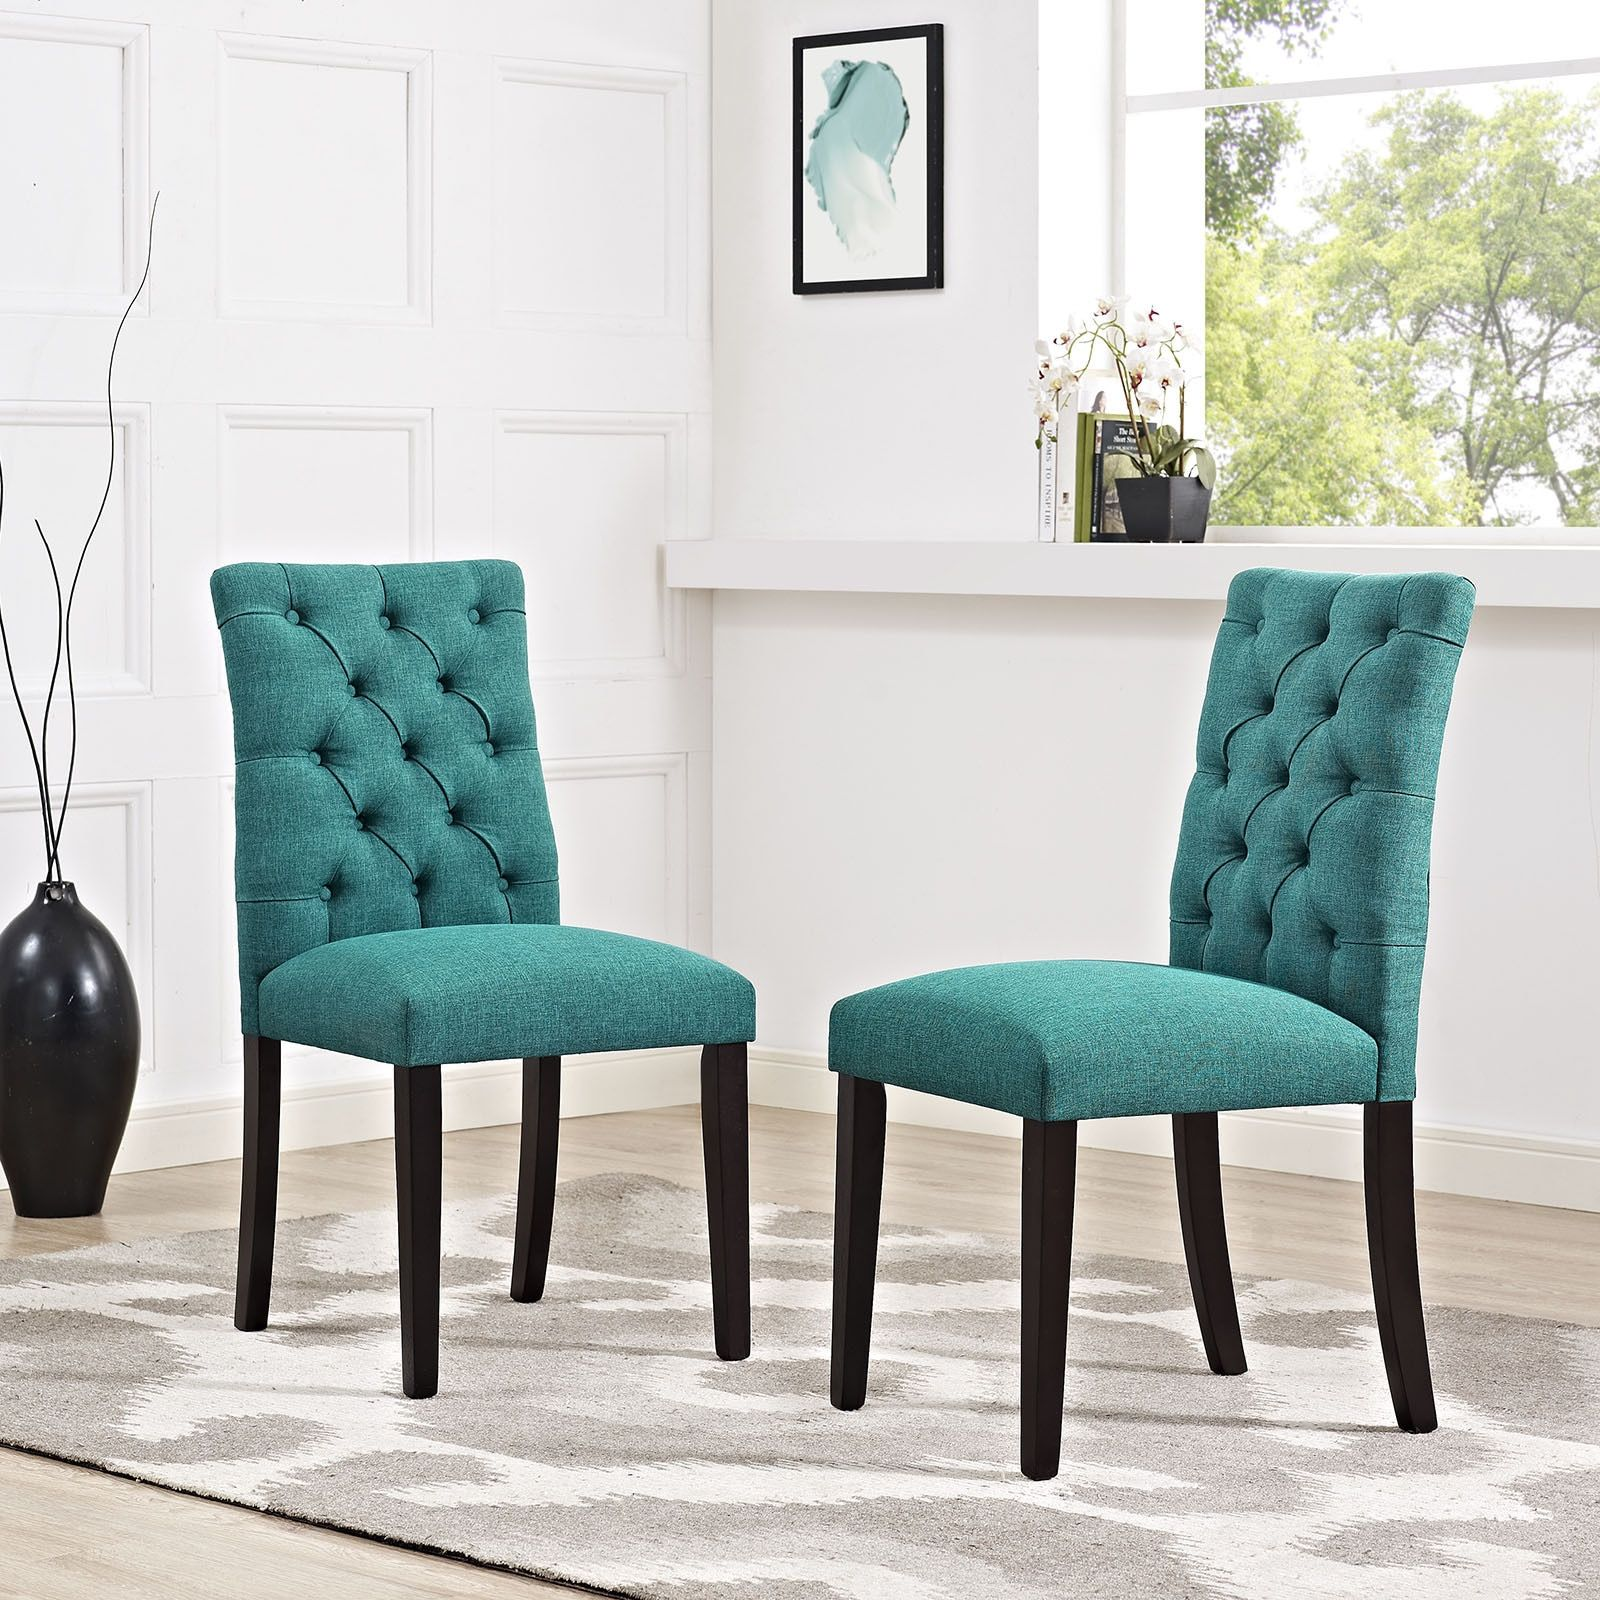 Modway Duchess Tufted Fabric Dining Chair (Azure), Beige Off-White ...